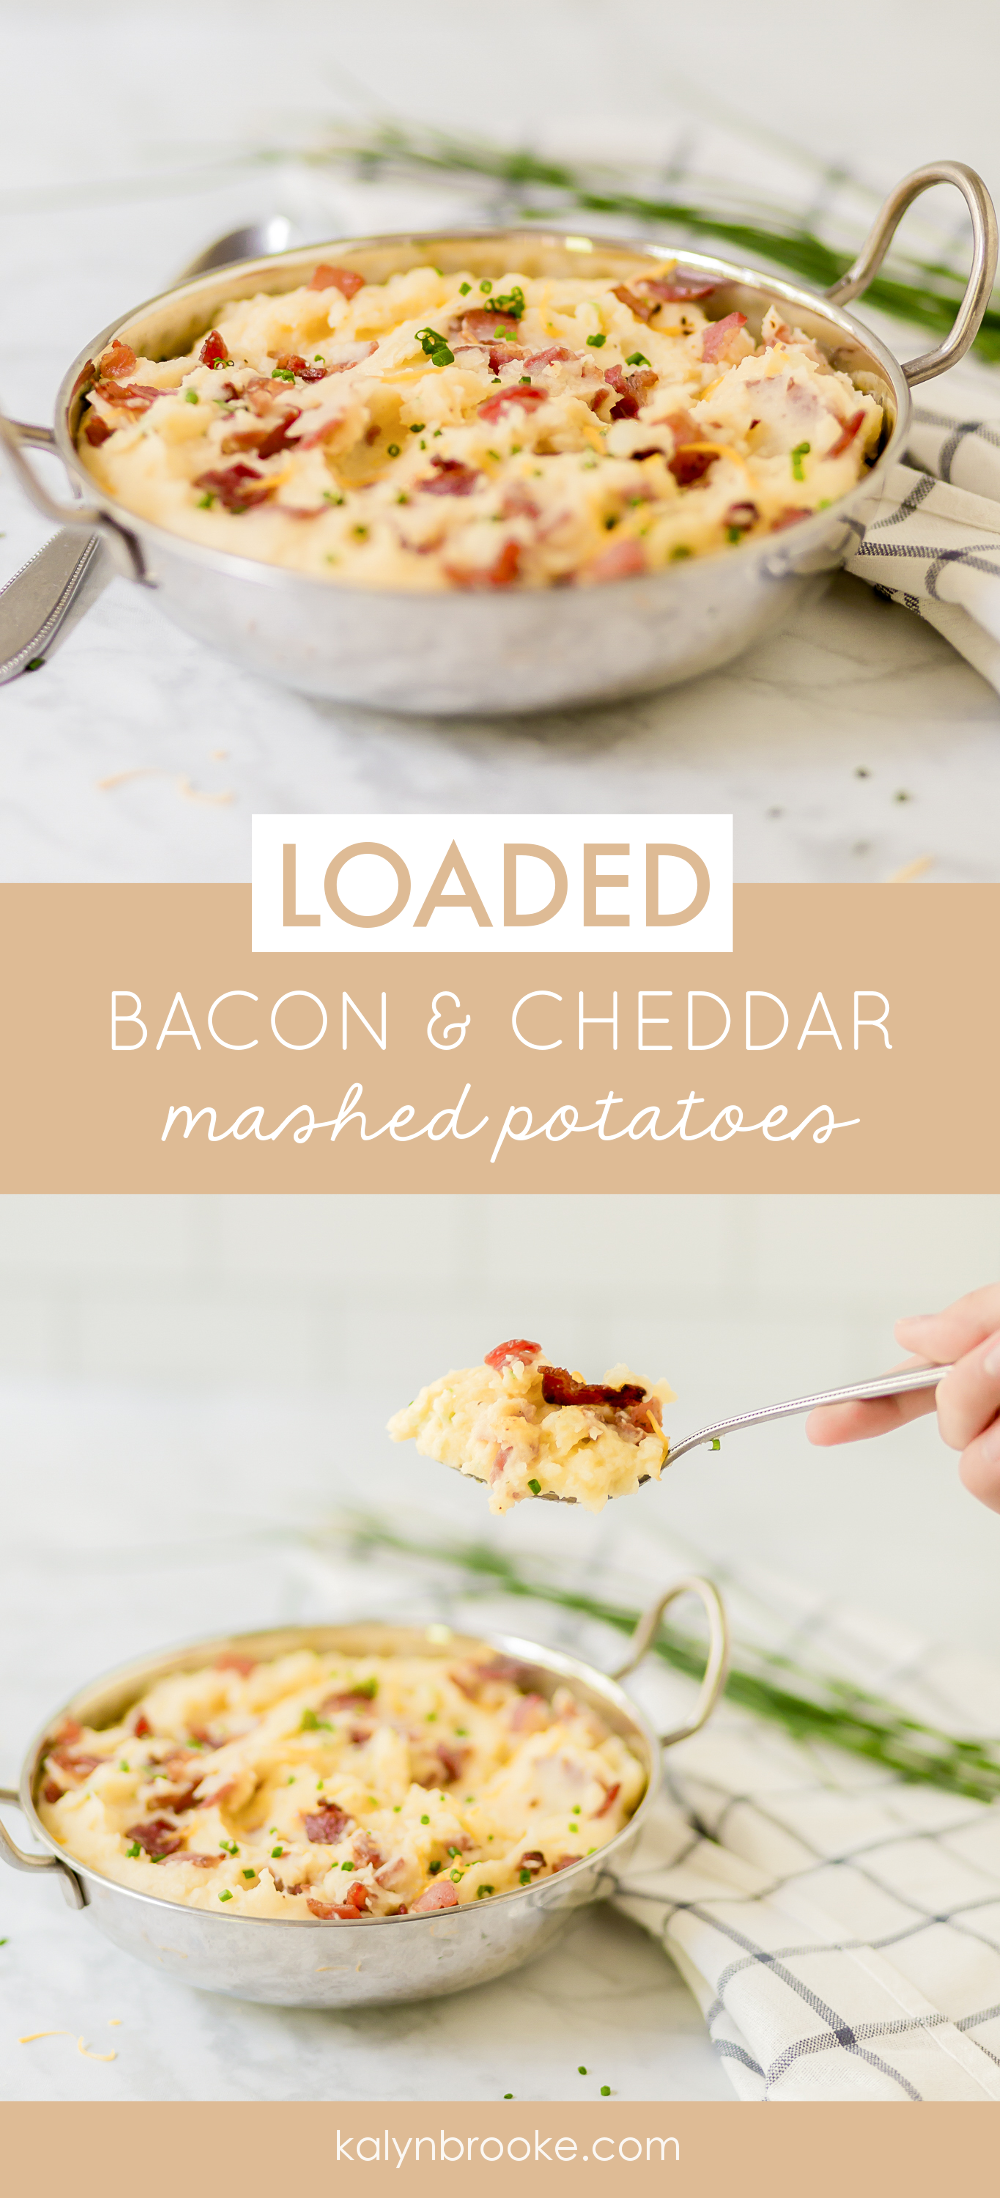 Mashed potatoes are a must at Thanksgiving, and this bacon cheddar mashed potatoes recipe gives the average potato a gourmet upgrade. Topped with a savory trio of bacon, cheddar, and green onions, you can't go wrong with this creamy dish! #baconcheddarmashedpotatoes #mashedpotatoes #potatorecipe